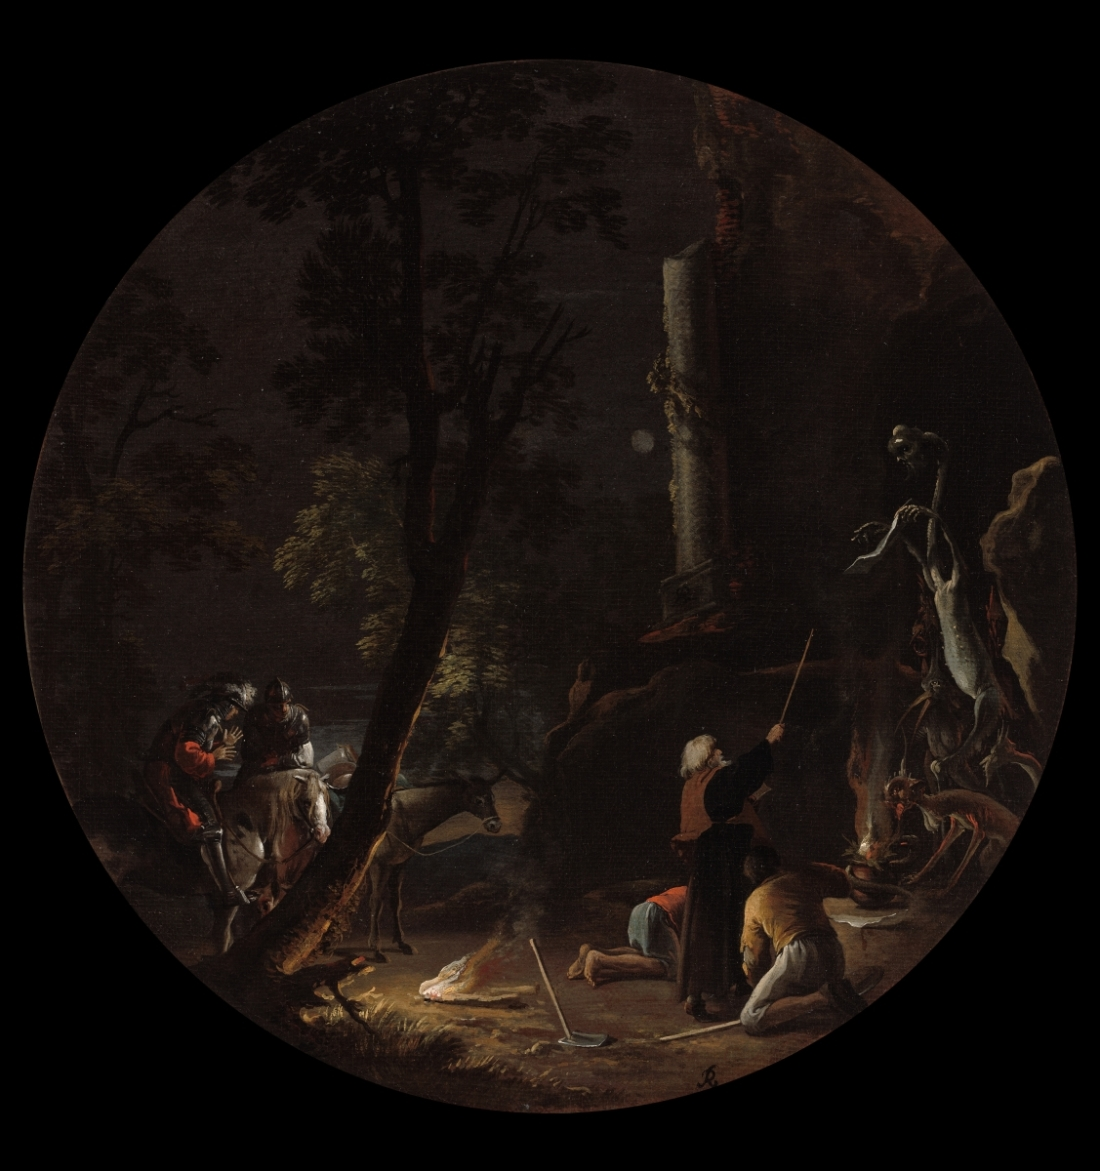 Salvator Rosa, Scene with Witches: Night, 1645-59. Collection of the Cleveland Museum of Art.